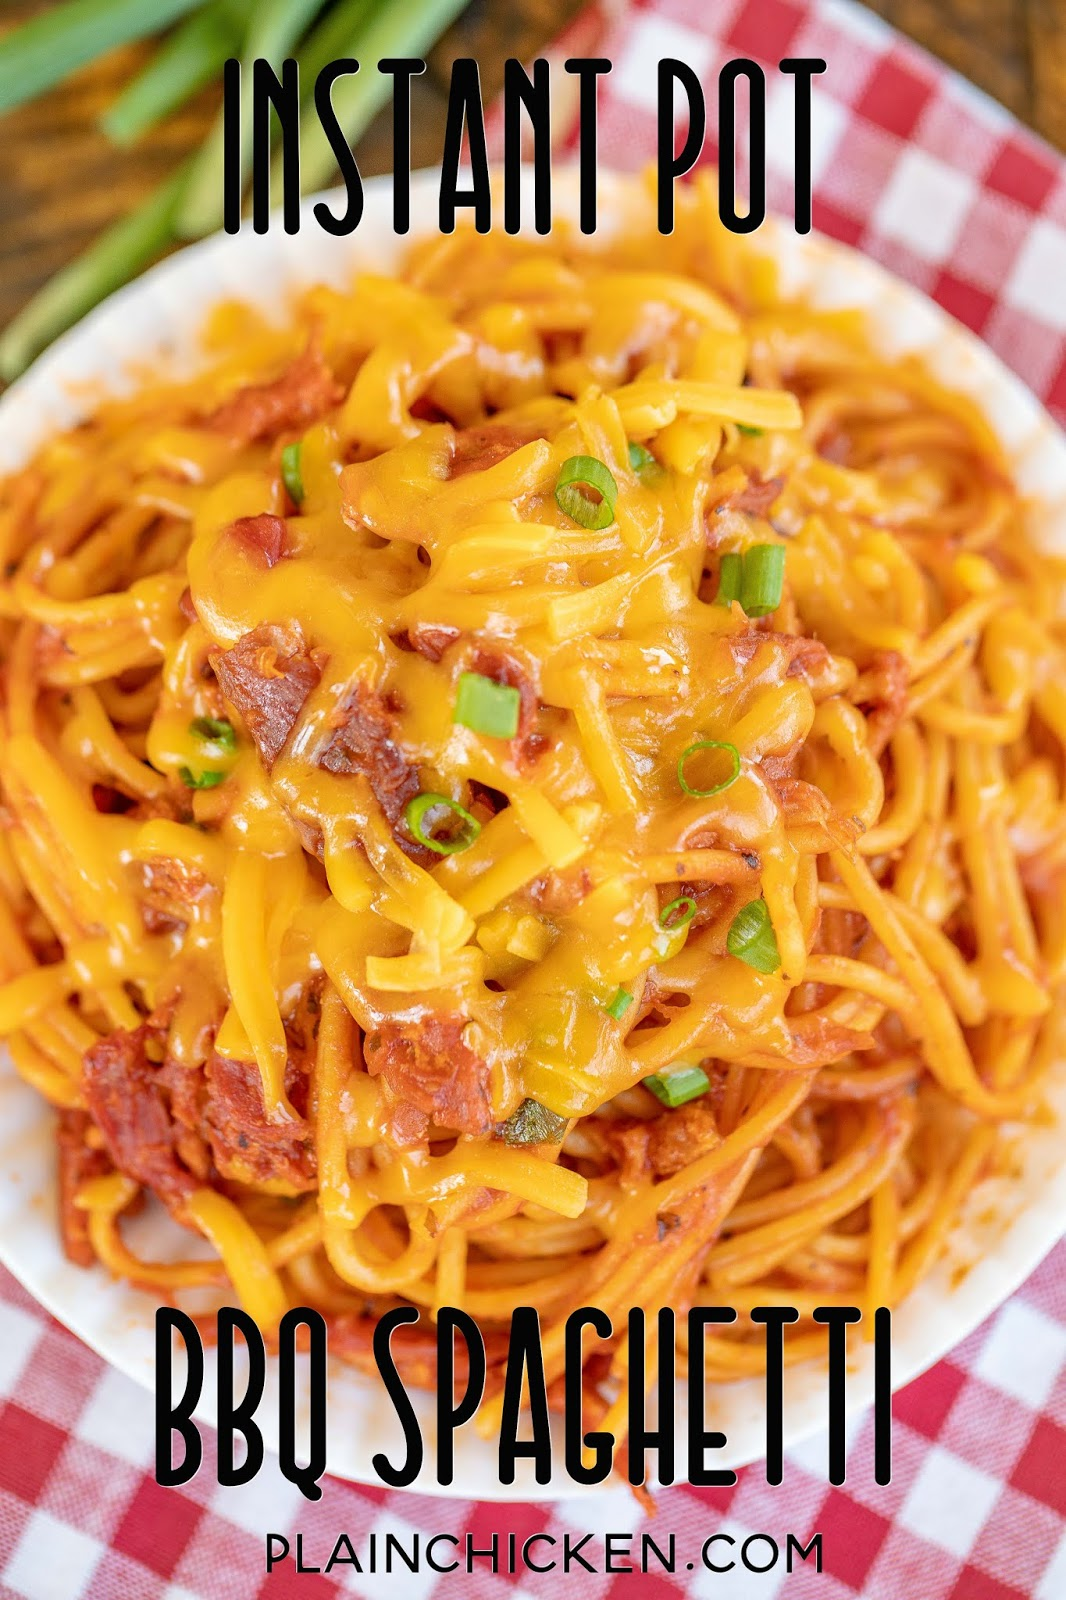 BBQ spaghetti topped with cheese and green onions